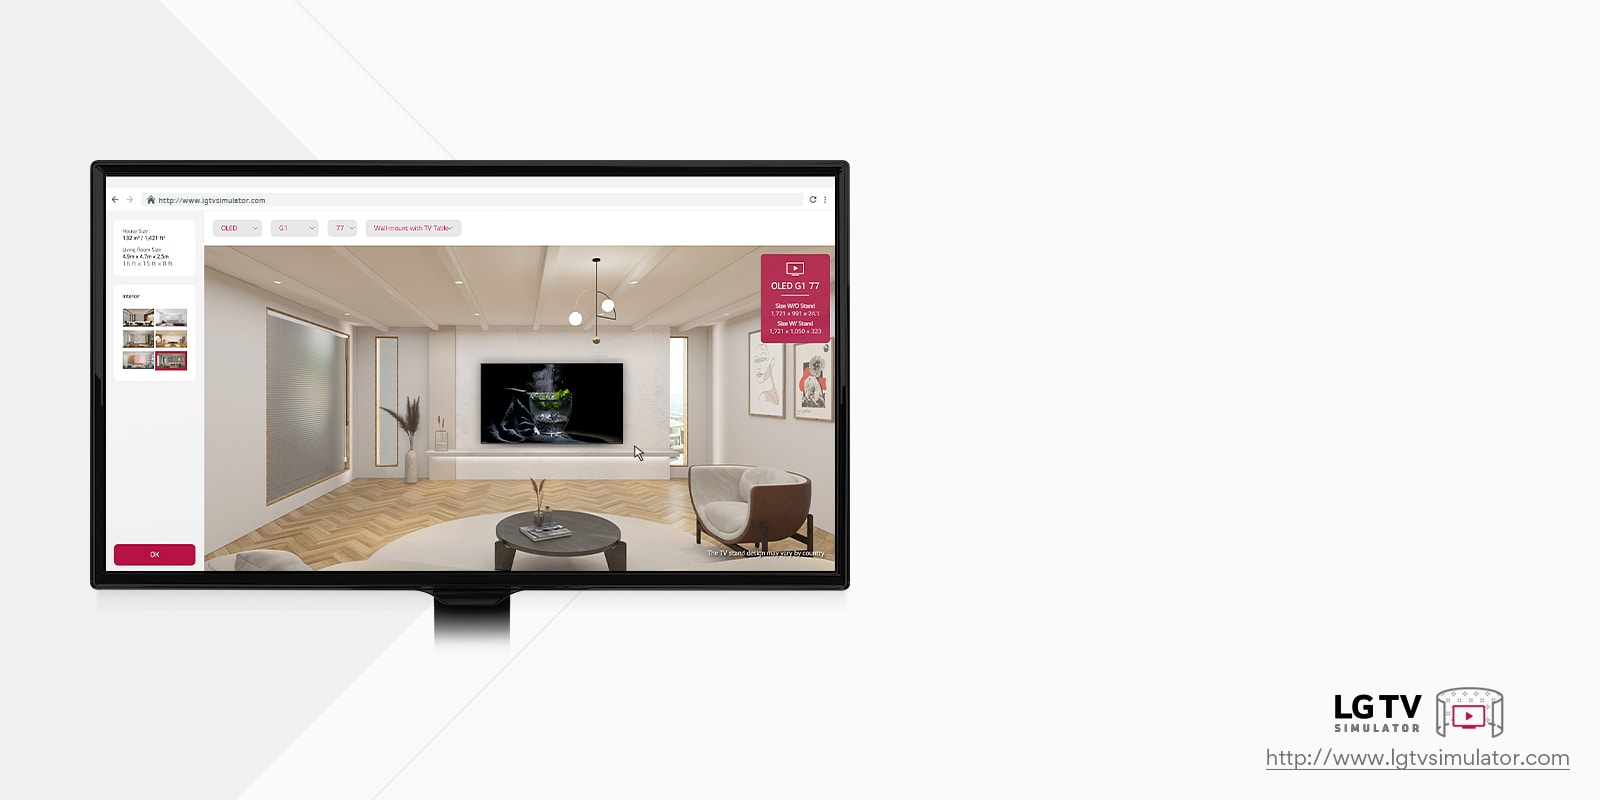 This is an explanatory image of a simulator that allows you to place all LG TV models in a virtual space.